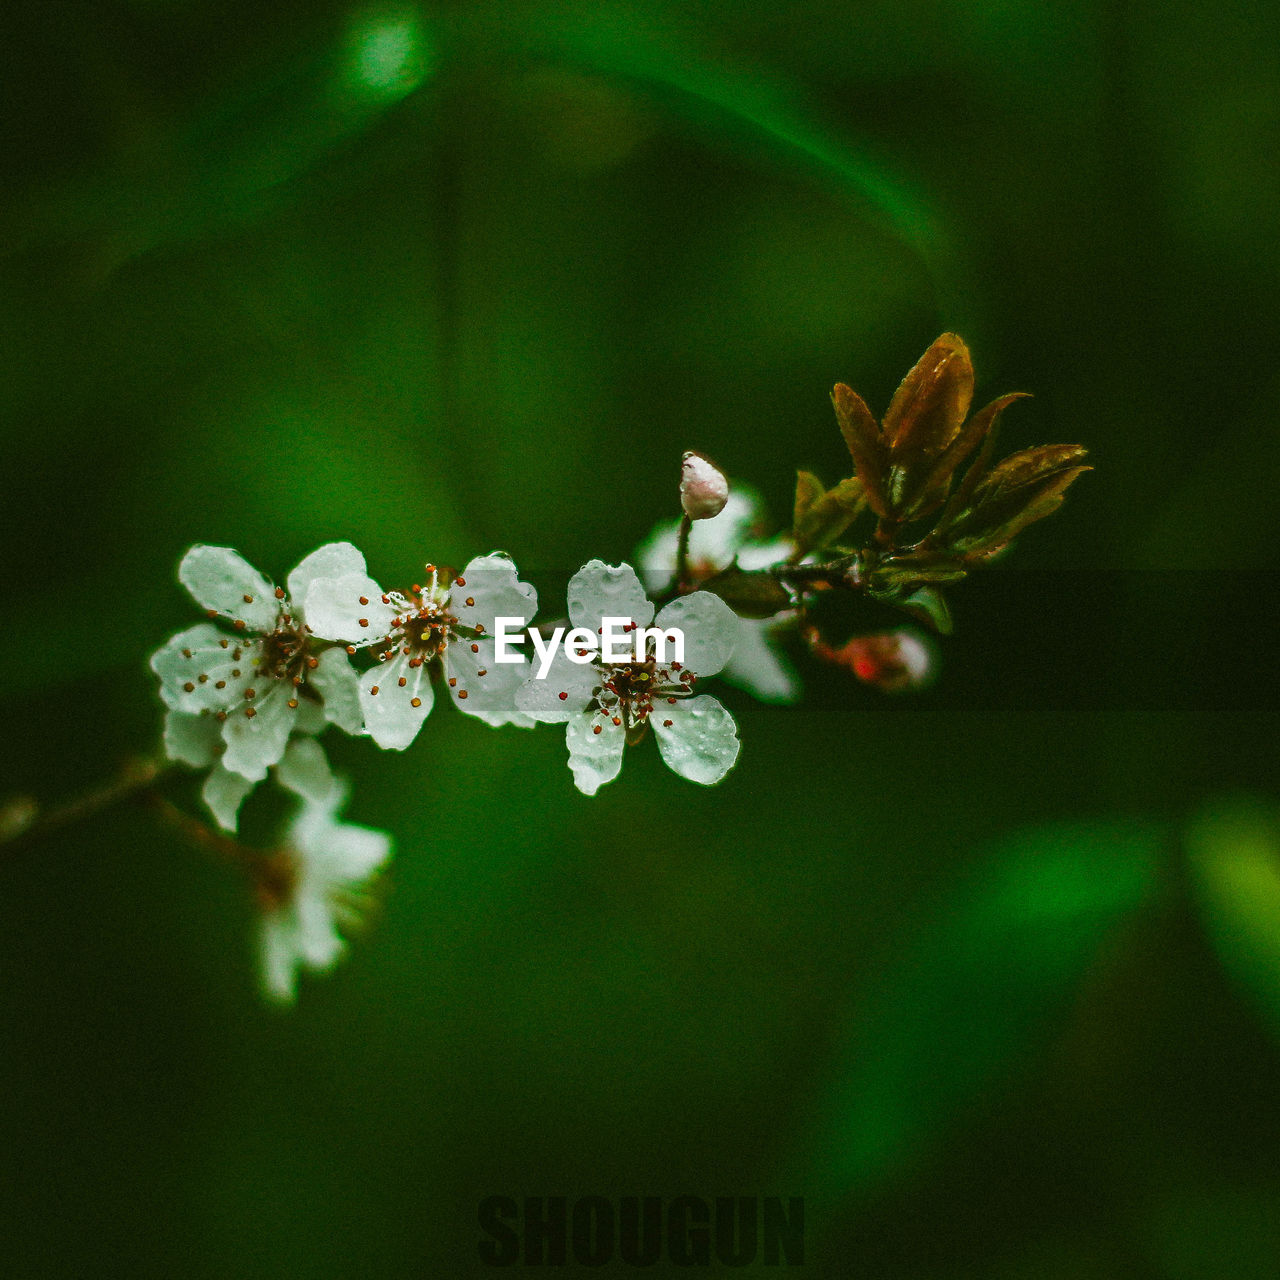 flower, nature, fragility, beauty in nature, growth, blossom, no people, freshness, petal, springtime, close-up, outdoors, plant, day, branch, flower head, tree, blooming